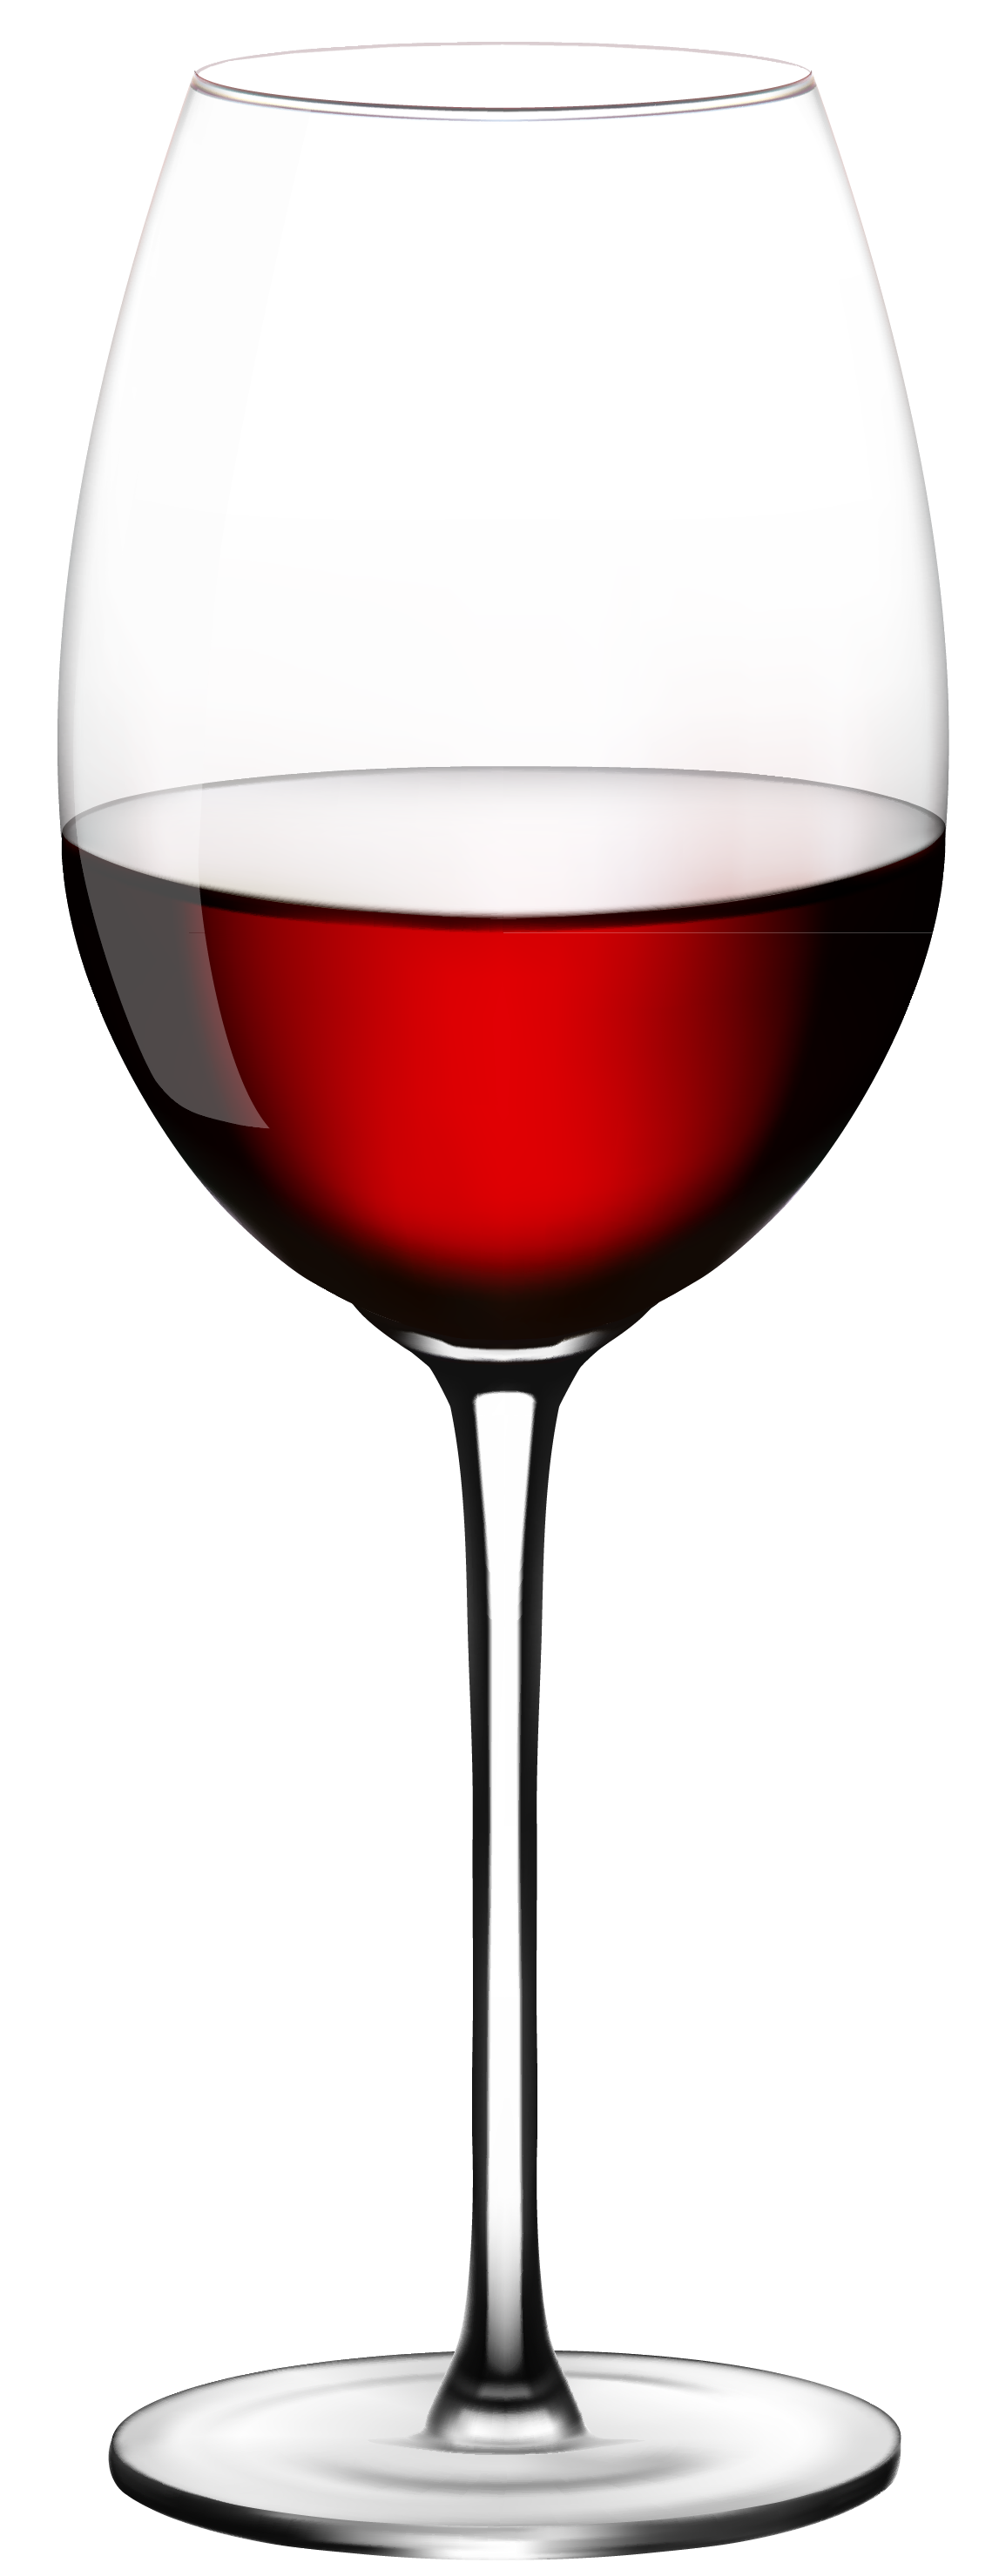 Wine glasses free download. Worm clipart glass